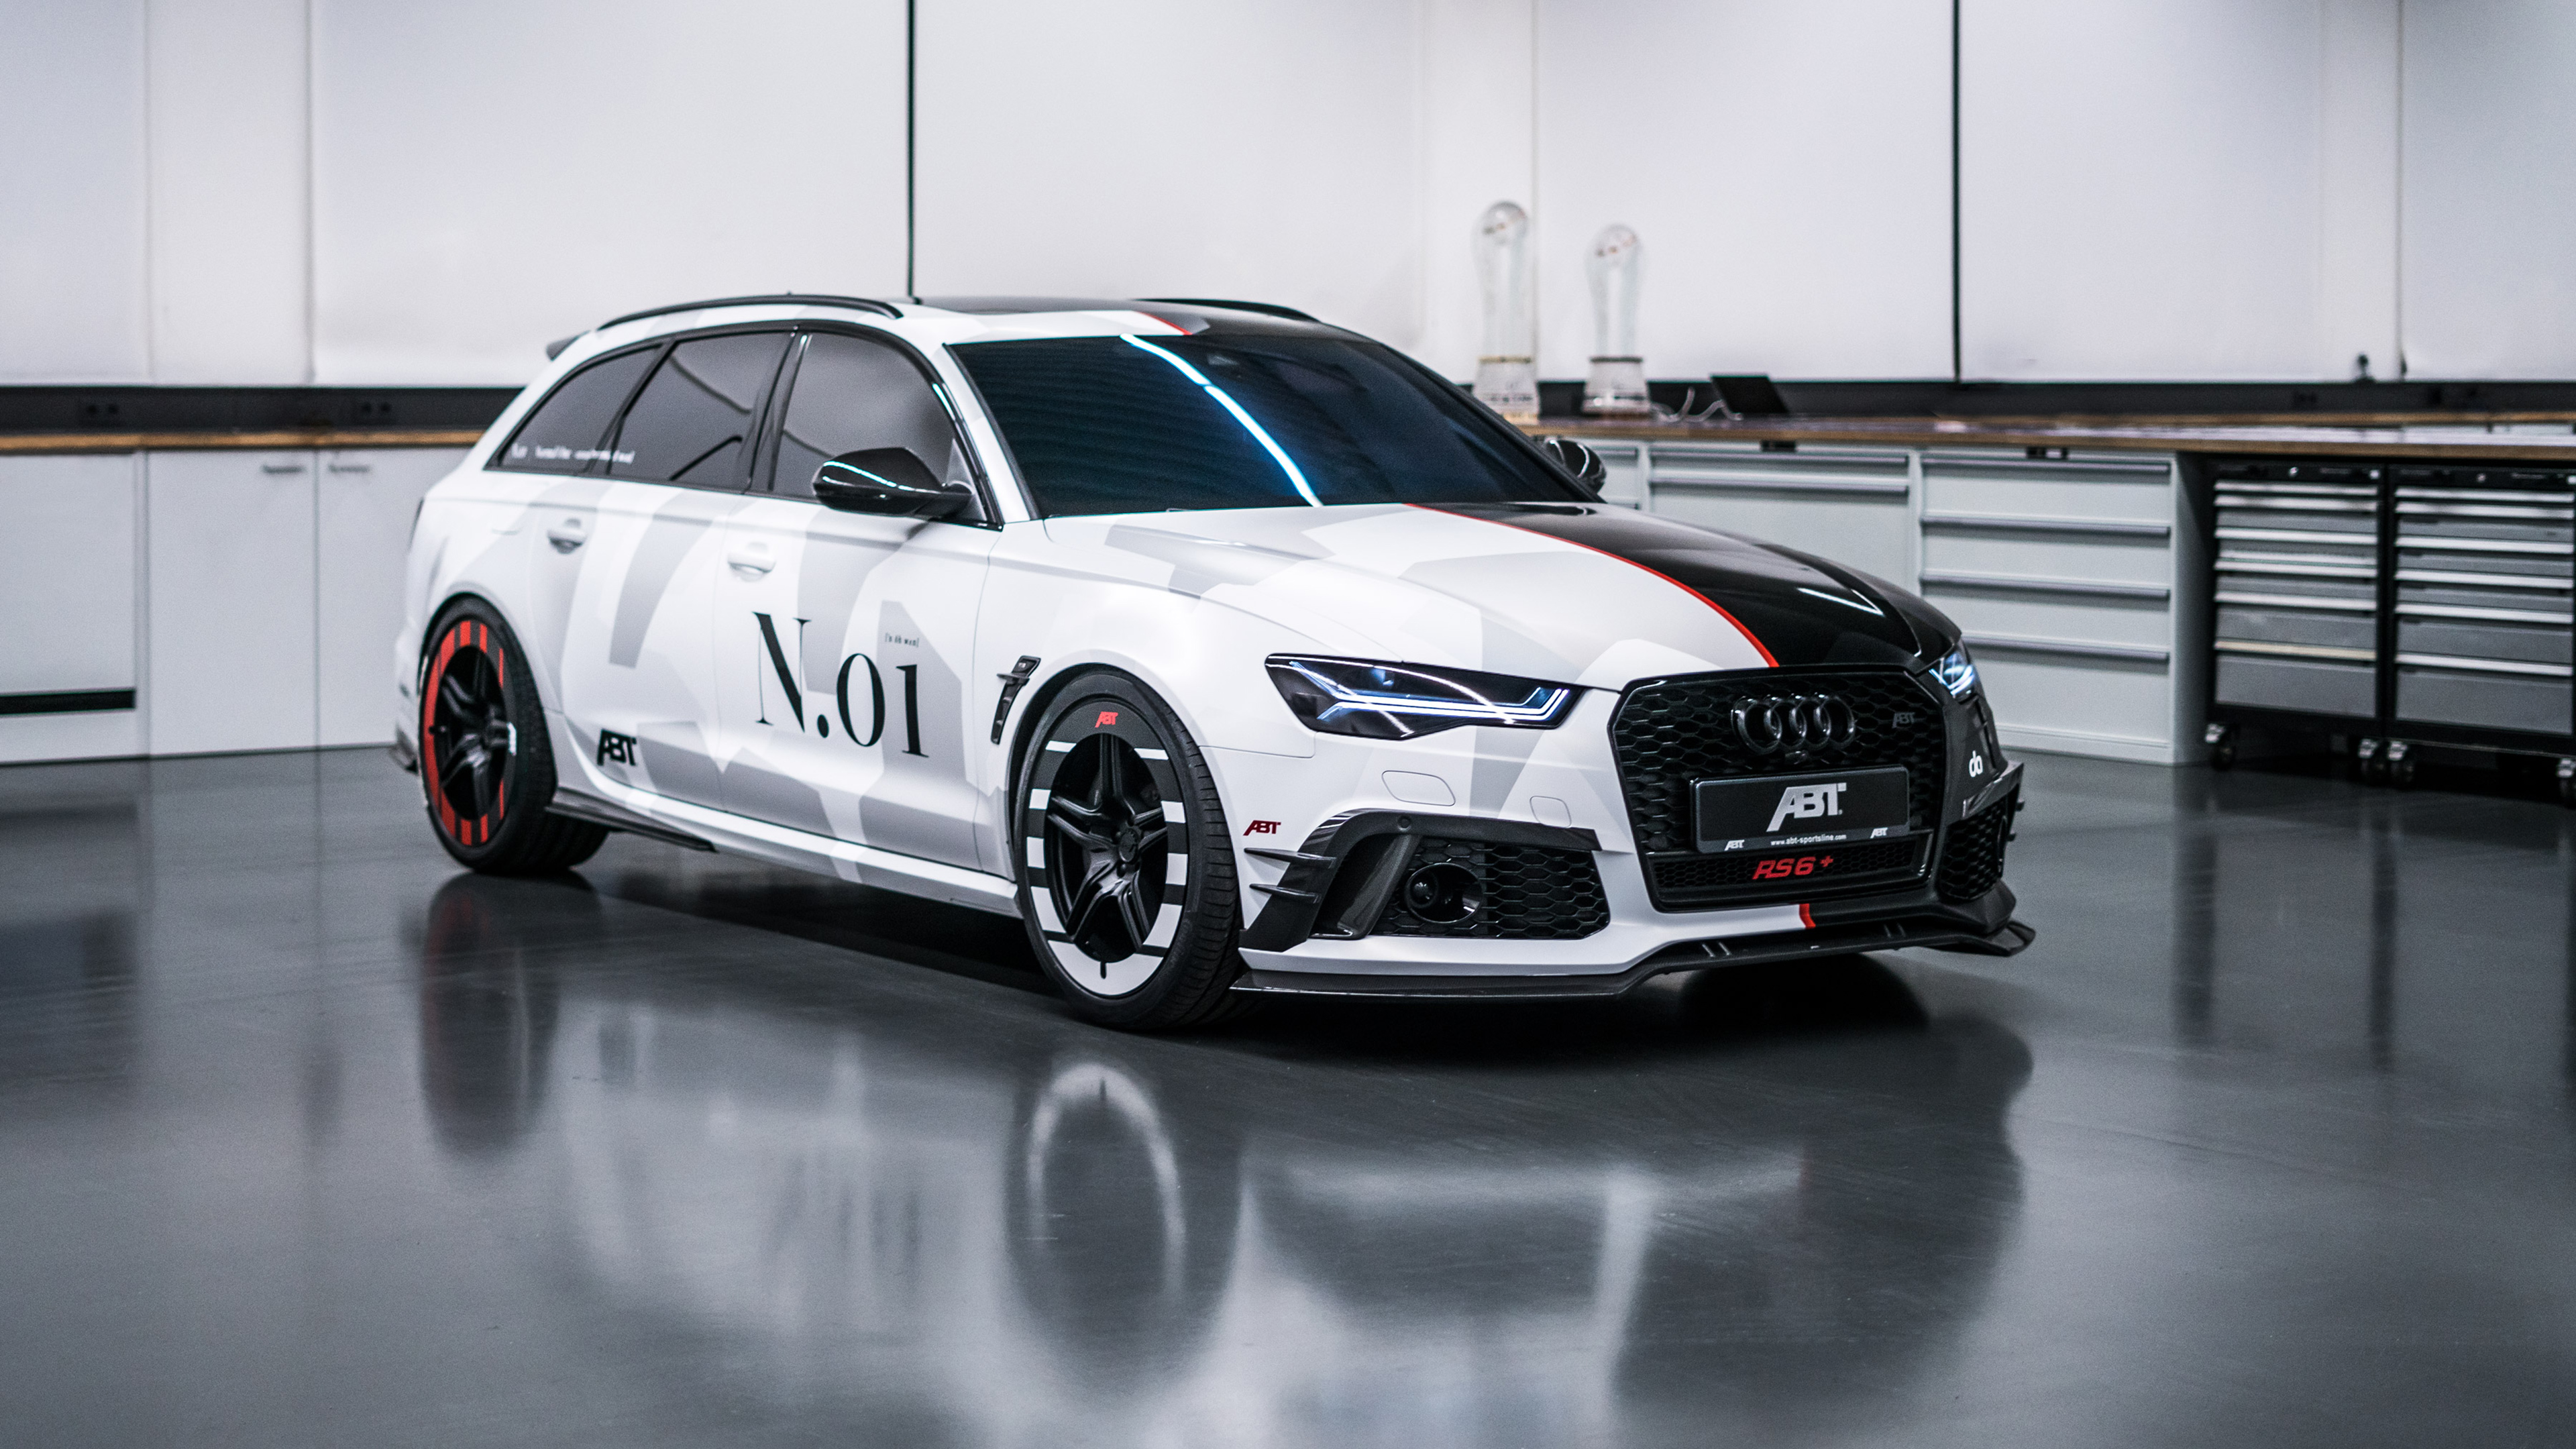 2018 Abt Audi Rs6 Avant For Jon Olsson 4k Wallpaper Hd Car